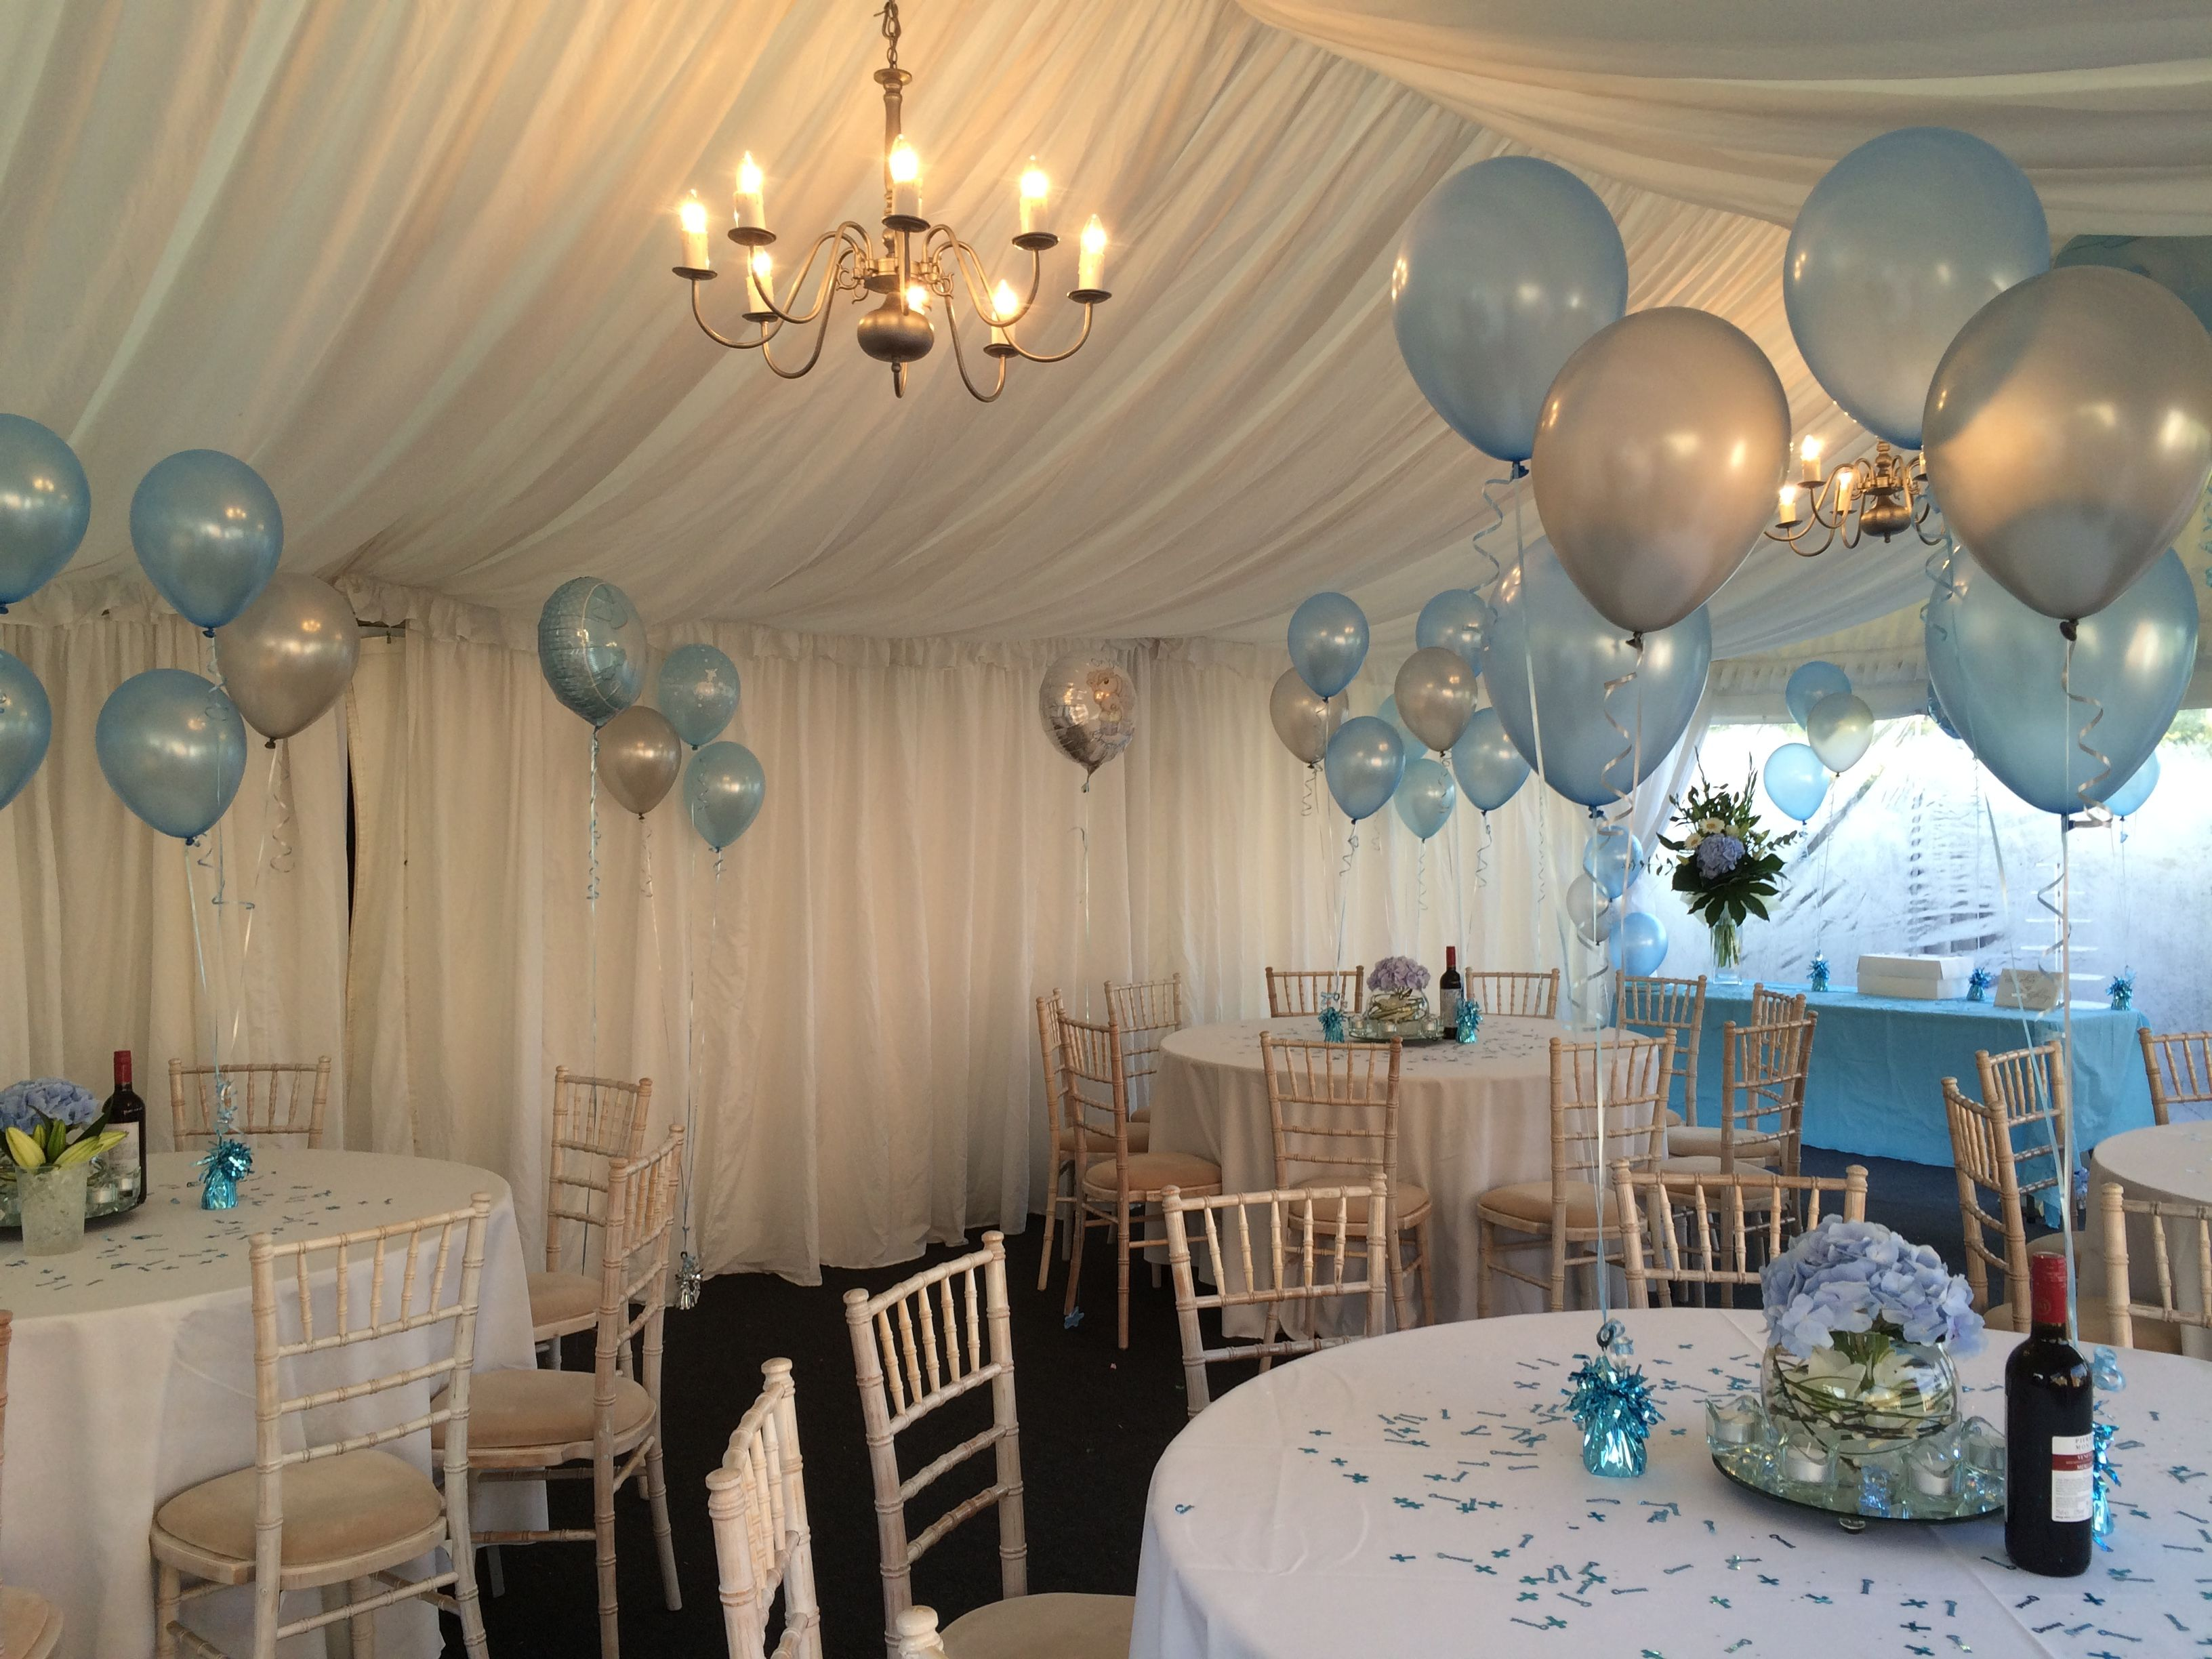 Table decoration for party - Complementary Floor And Table Balloon Decorations All Ready For The Christening Of A Lovely Baby Boy